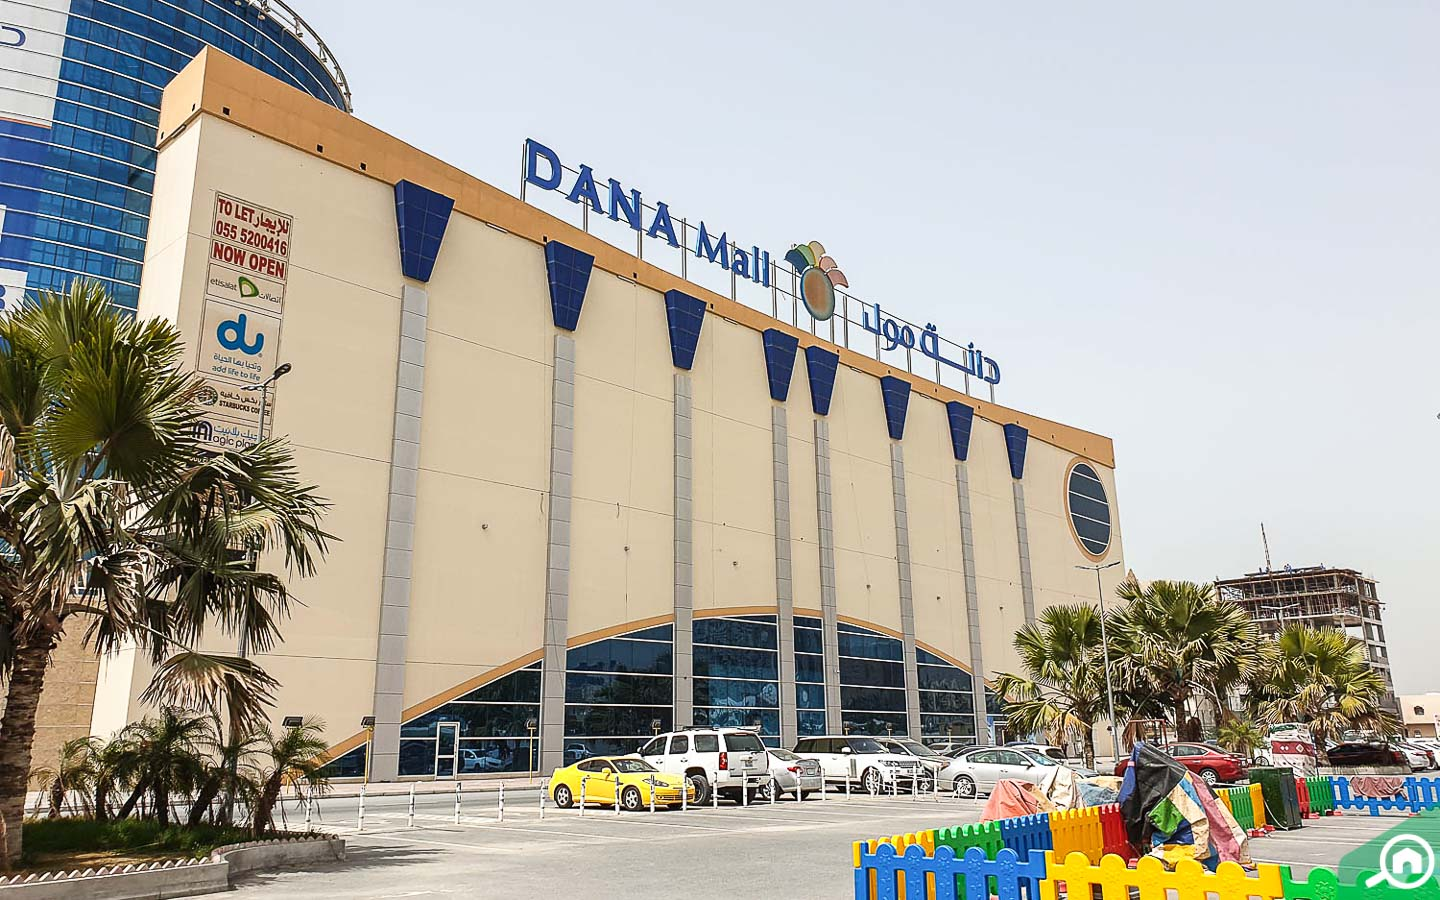 Dana Mall in Ajman